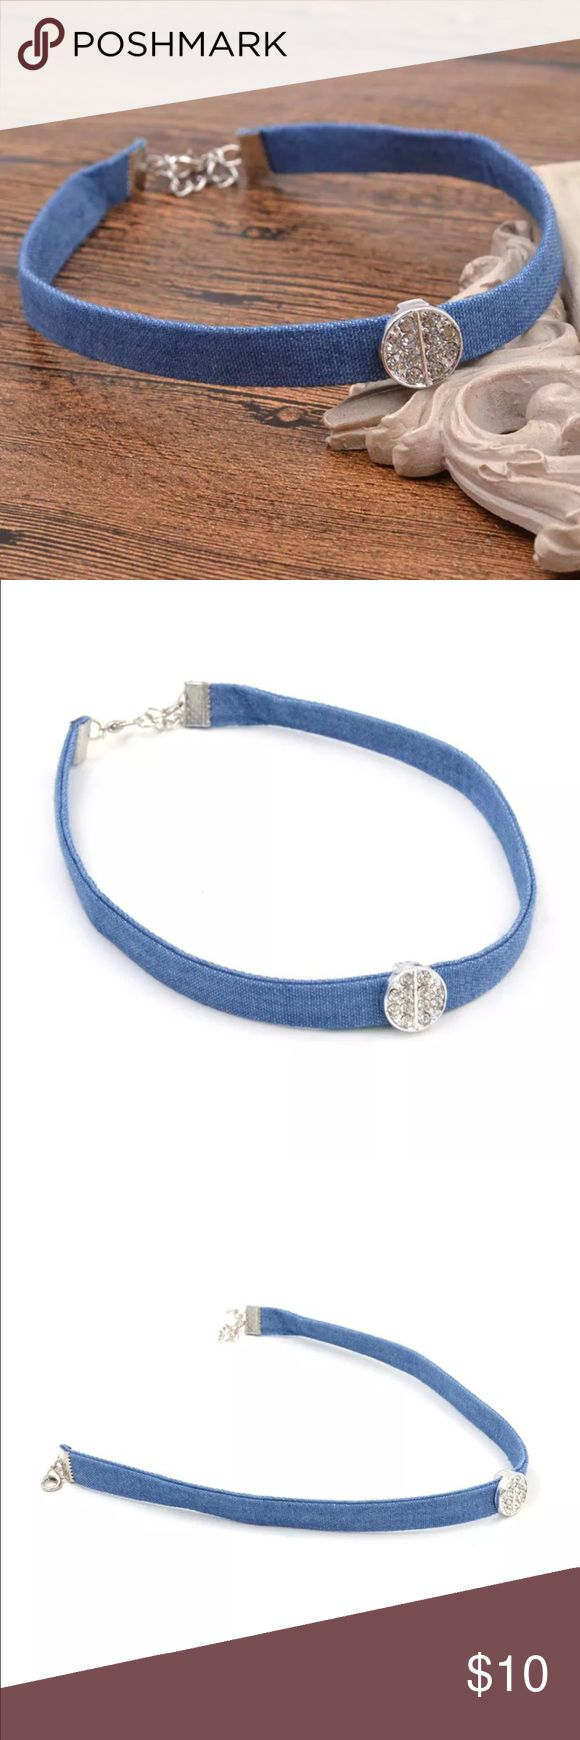 New✨Denim Choker With Crystal Rhinestone Pendant New✨Denim Choker With Crystal Rhinestone Pendant  Brand New✨ PRICE IS FIRM- already listed at lowest price  If you want to save please look into bundling  In Stock No Trades Will ship same day as long as order is received by 1:00pm PST Jewelry Necklaces